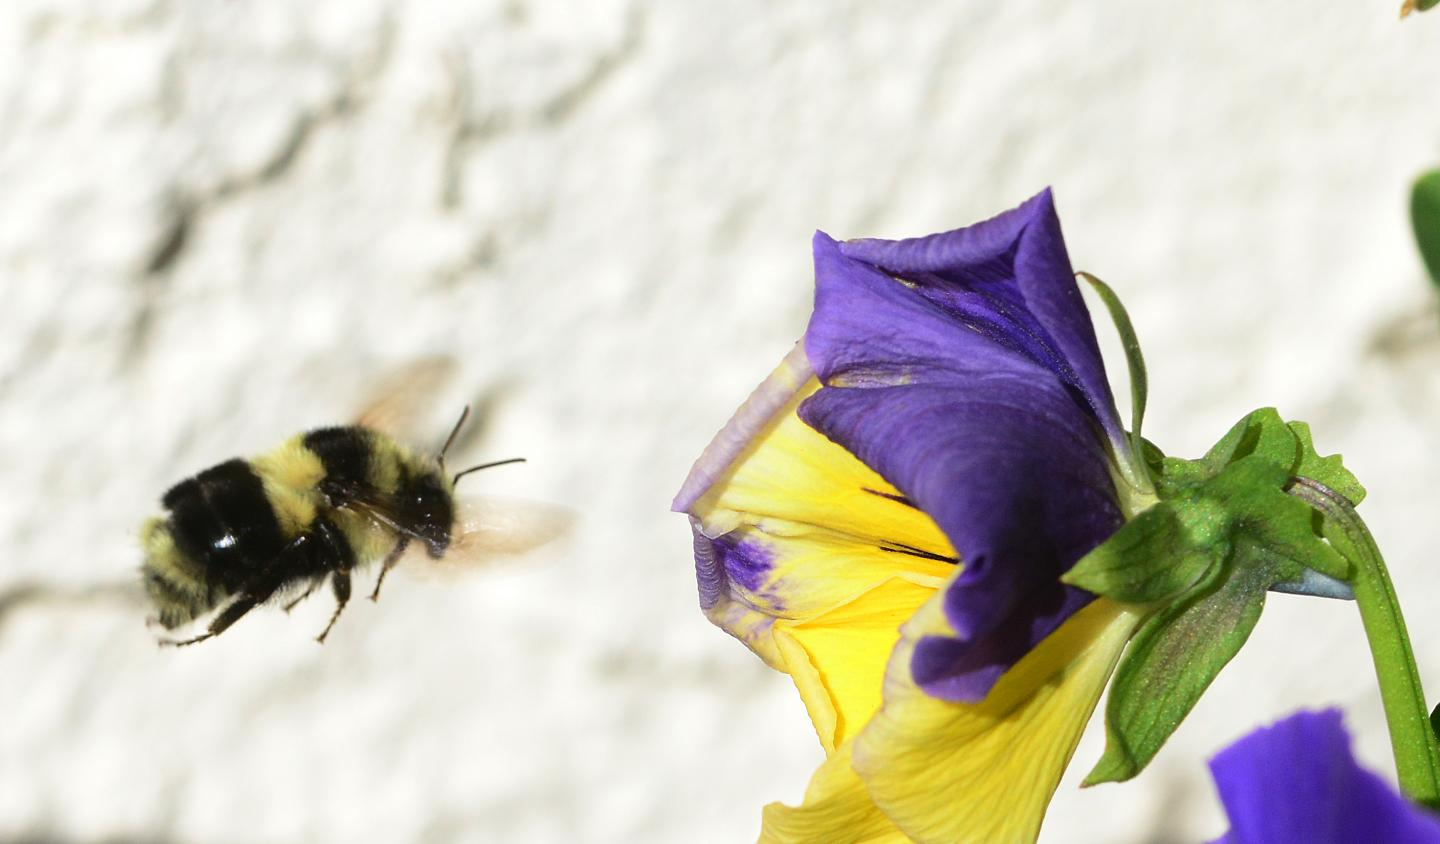 No One Talks About How Flowers Are Killing Bees